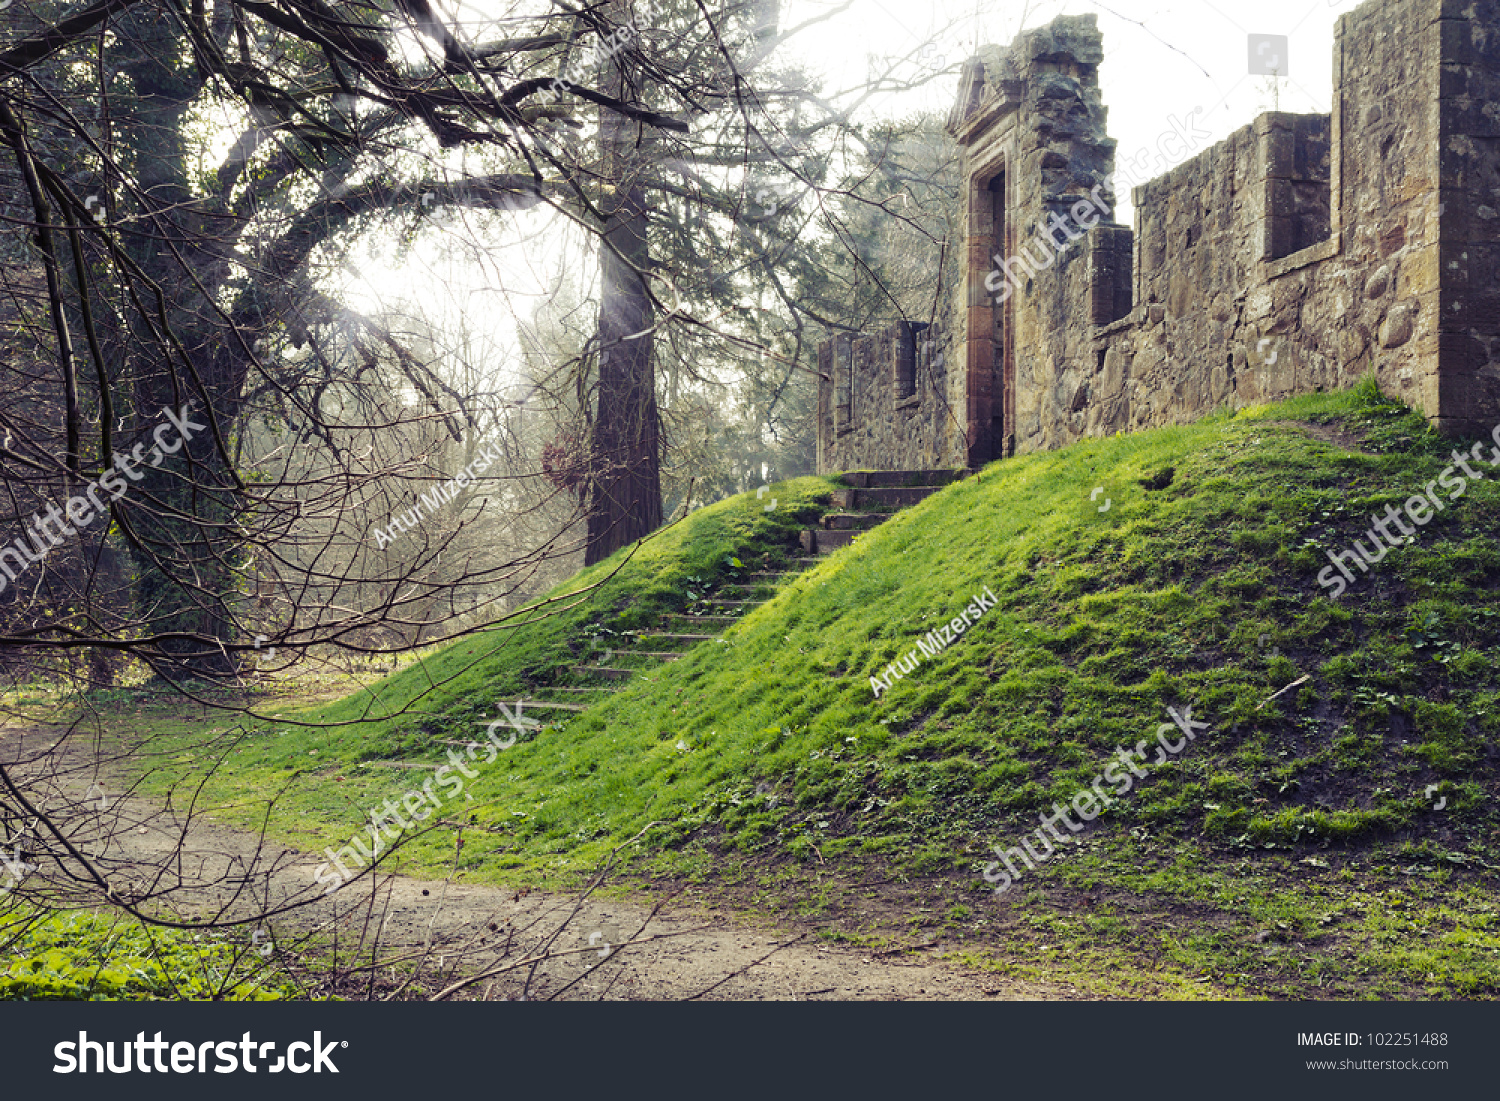 Wood Elevation Edinburgh : Ancient temple on the terrain elevation surrounded by